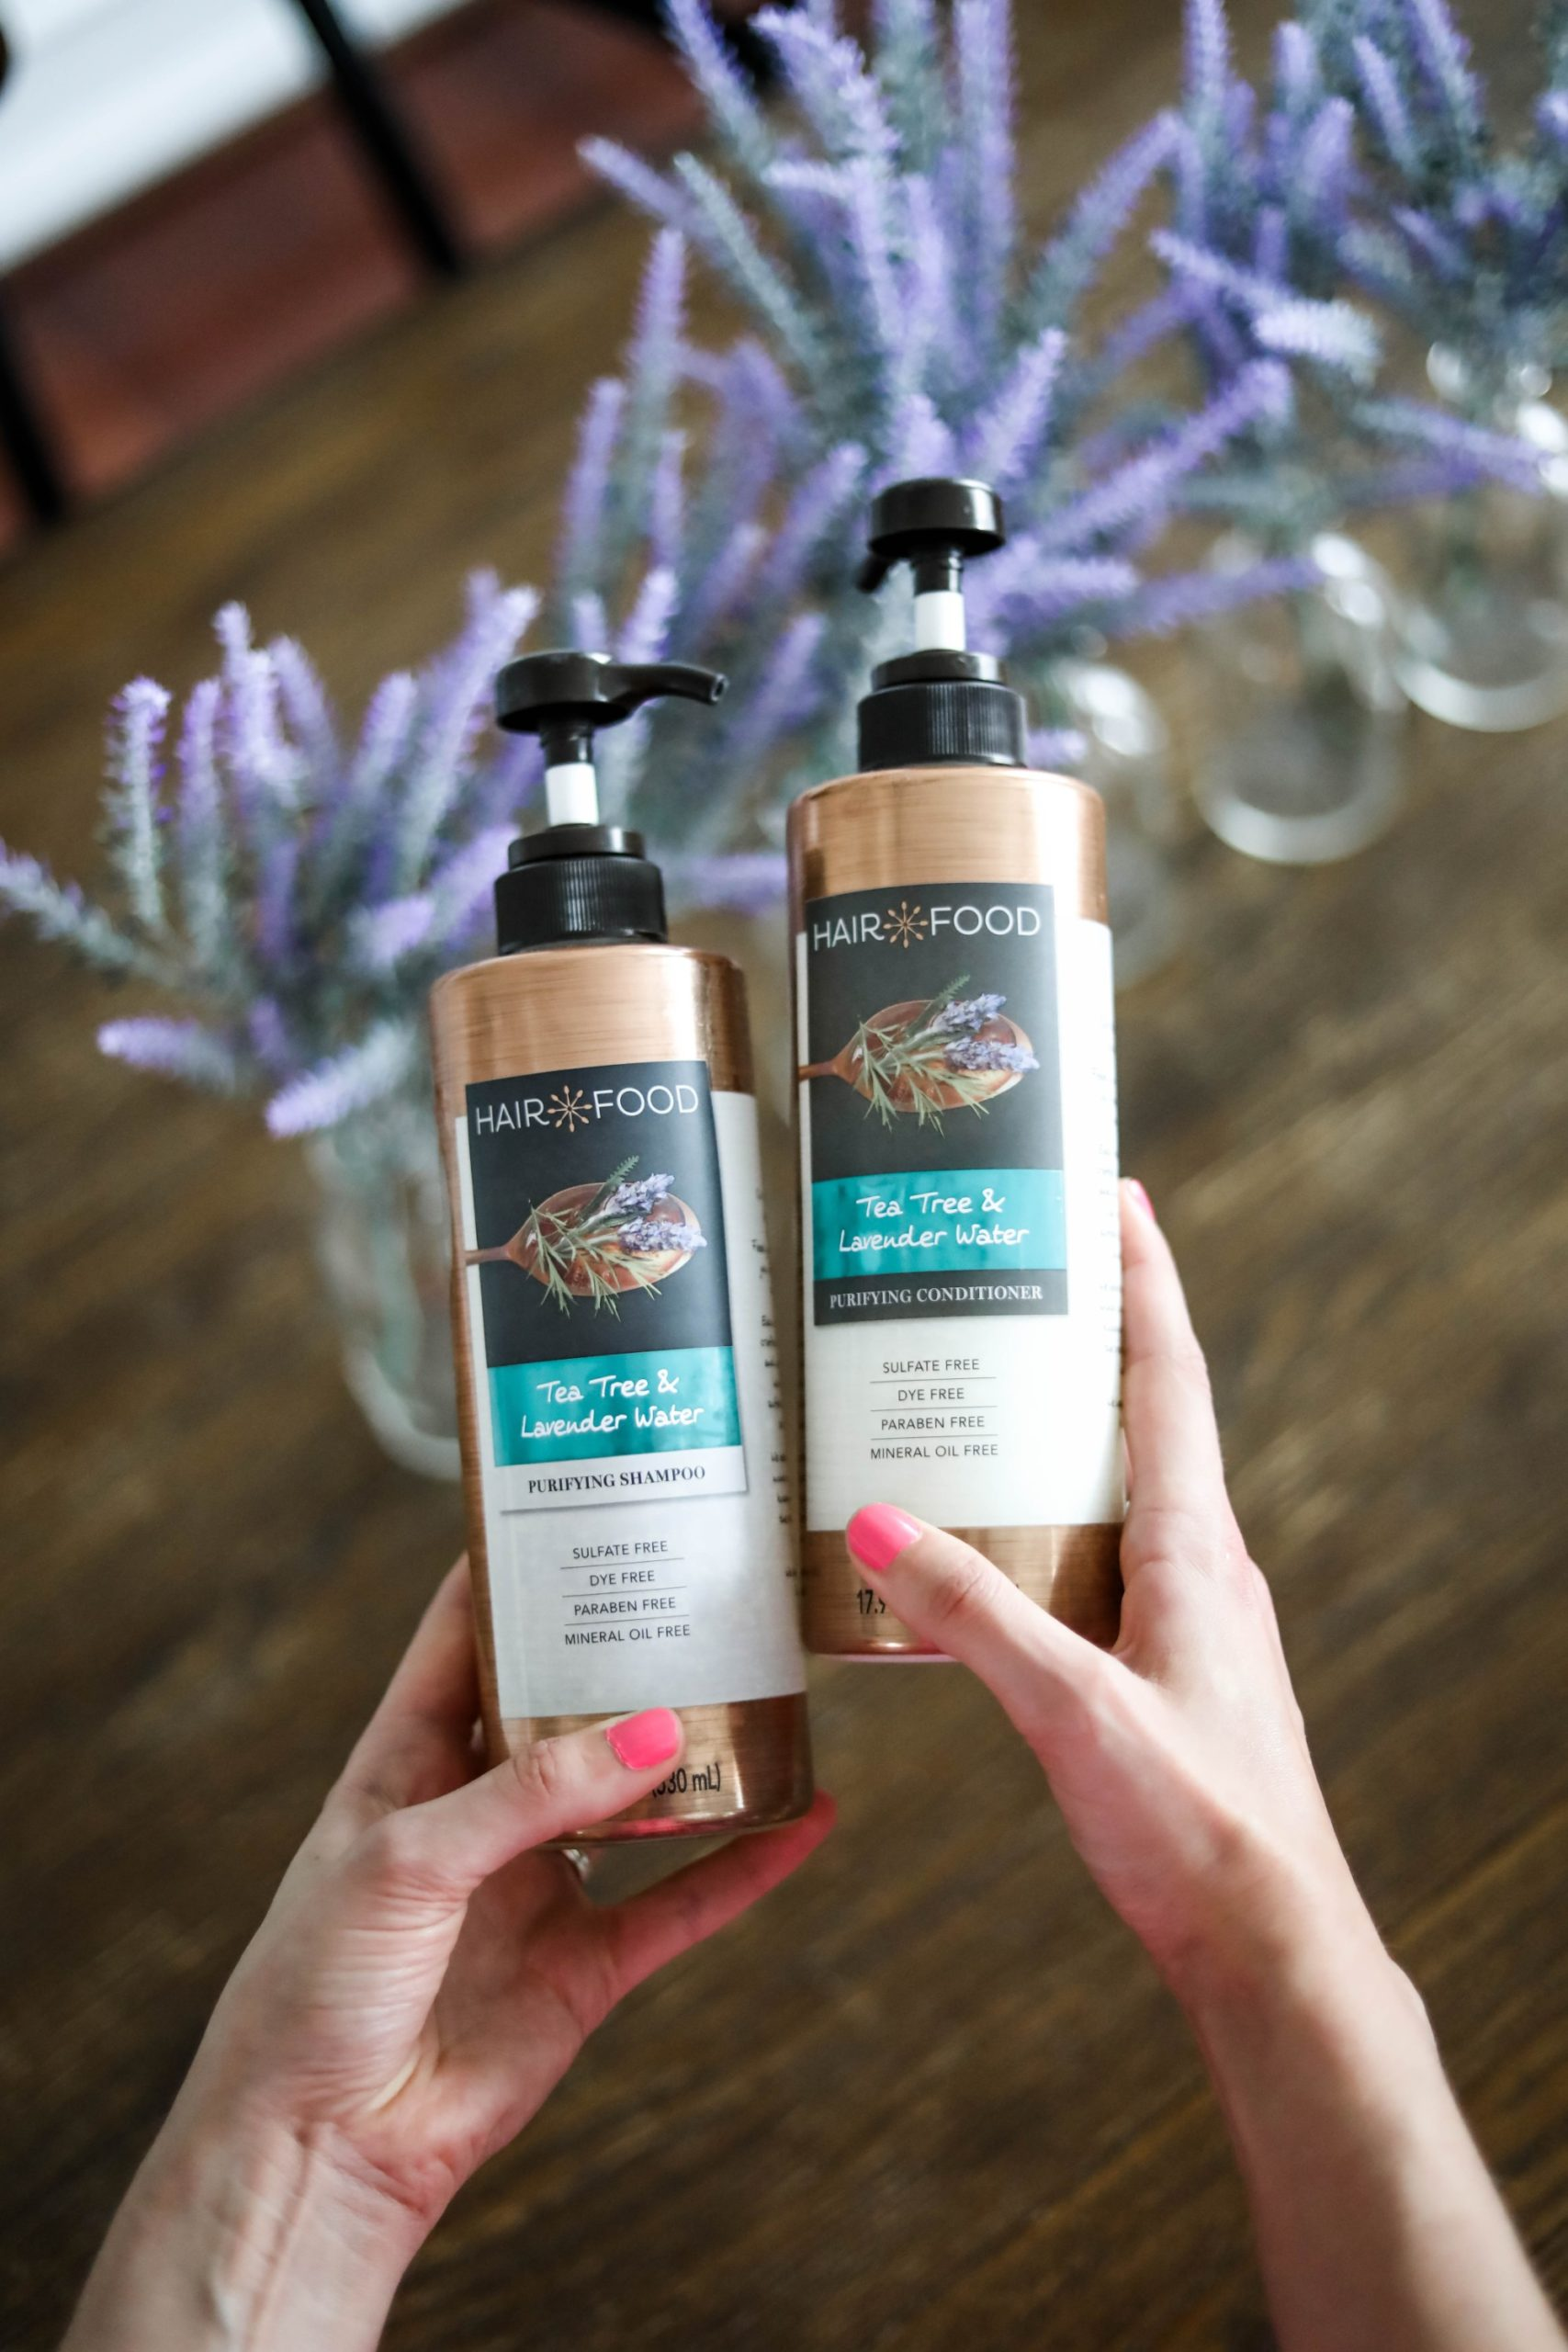 Hair Food shampoo/conditioner - COOL SH*T I LOVELOVELOVE - Monthly Favorites, June 2020 on Coming Up Roses!